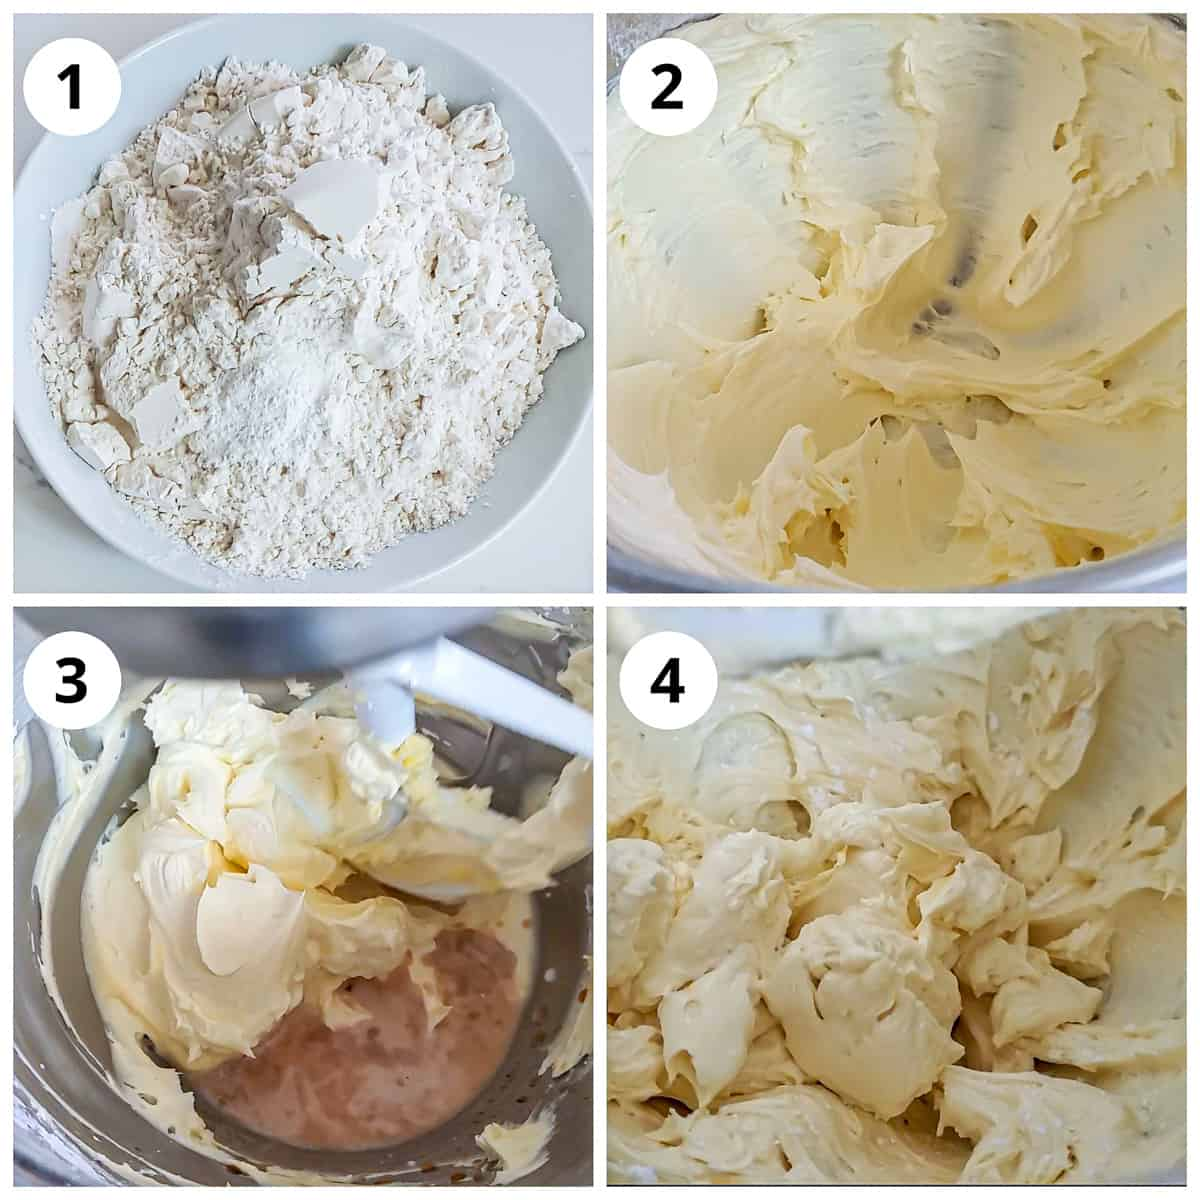 Steps for mixing dry ingredinets and creaming butter sugar, vanilla and milk